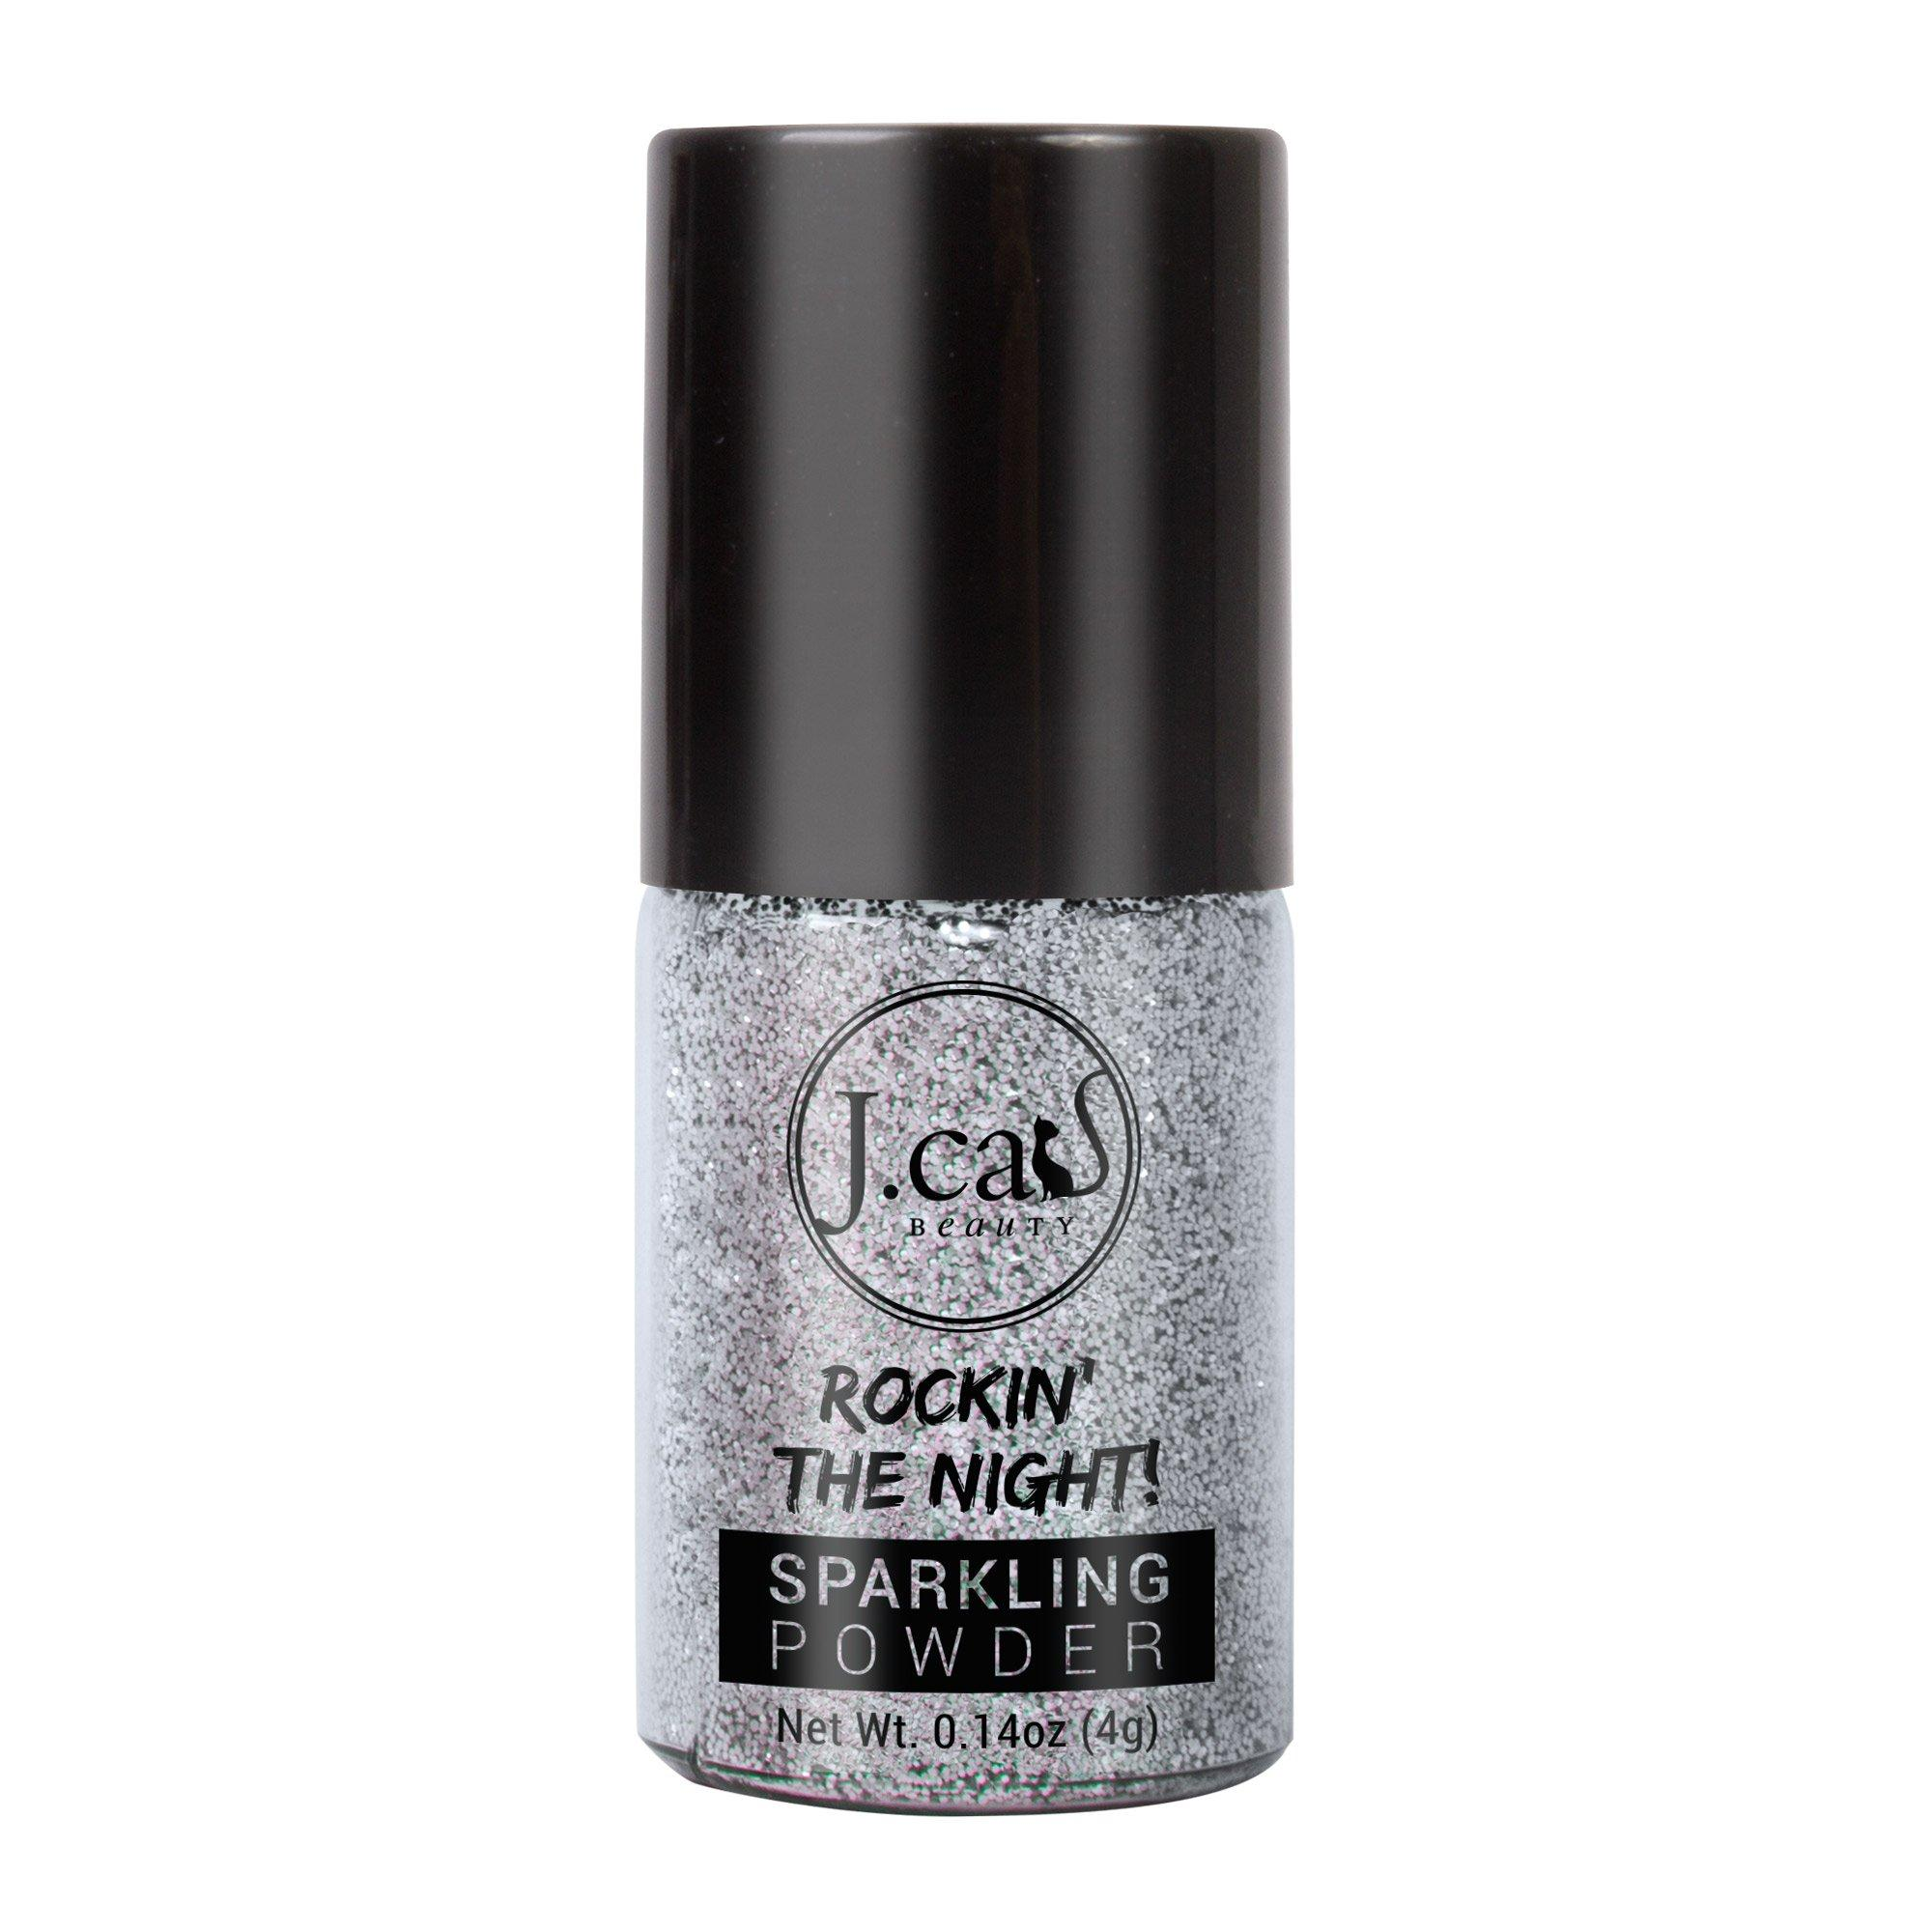 J'Cat Sparkling Powder (Cool Silver)